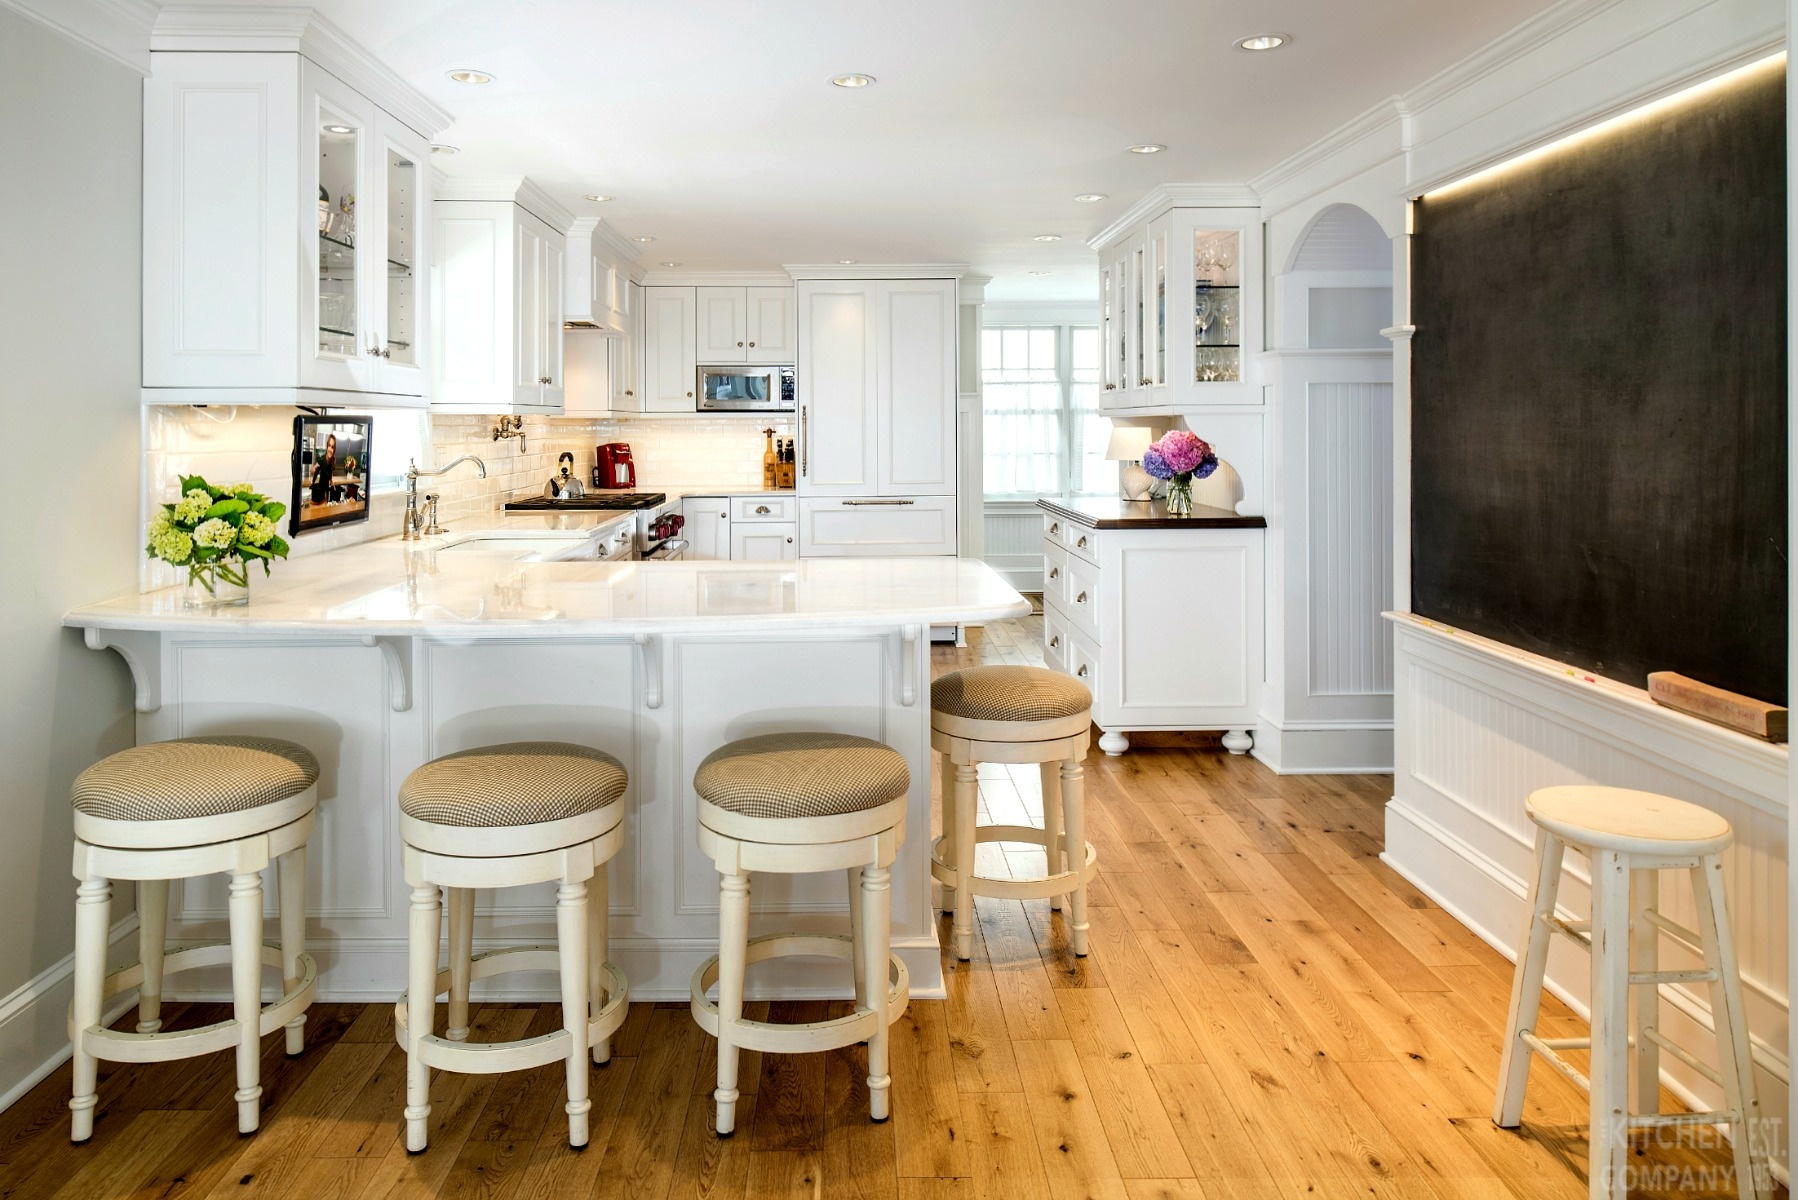 White Cottage Kitchen in Milford, CT | White Kitchen Remodel ...